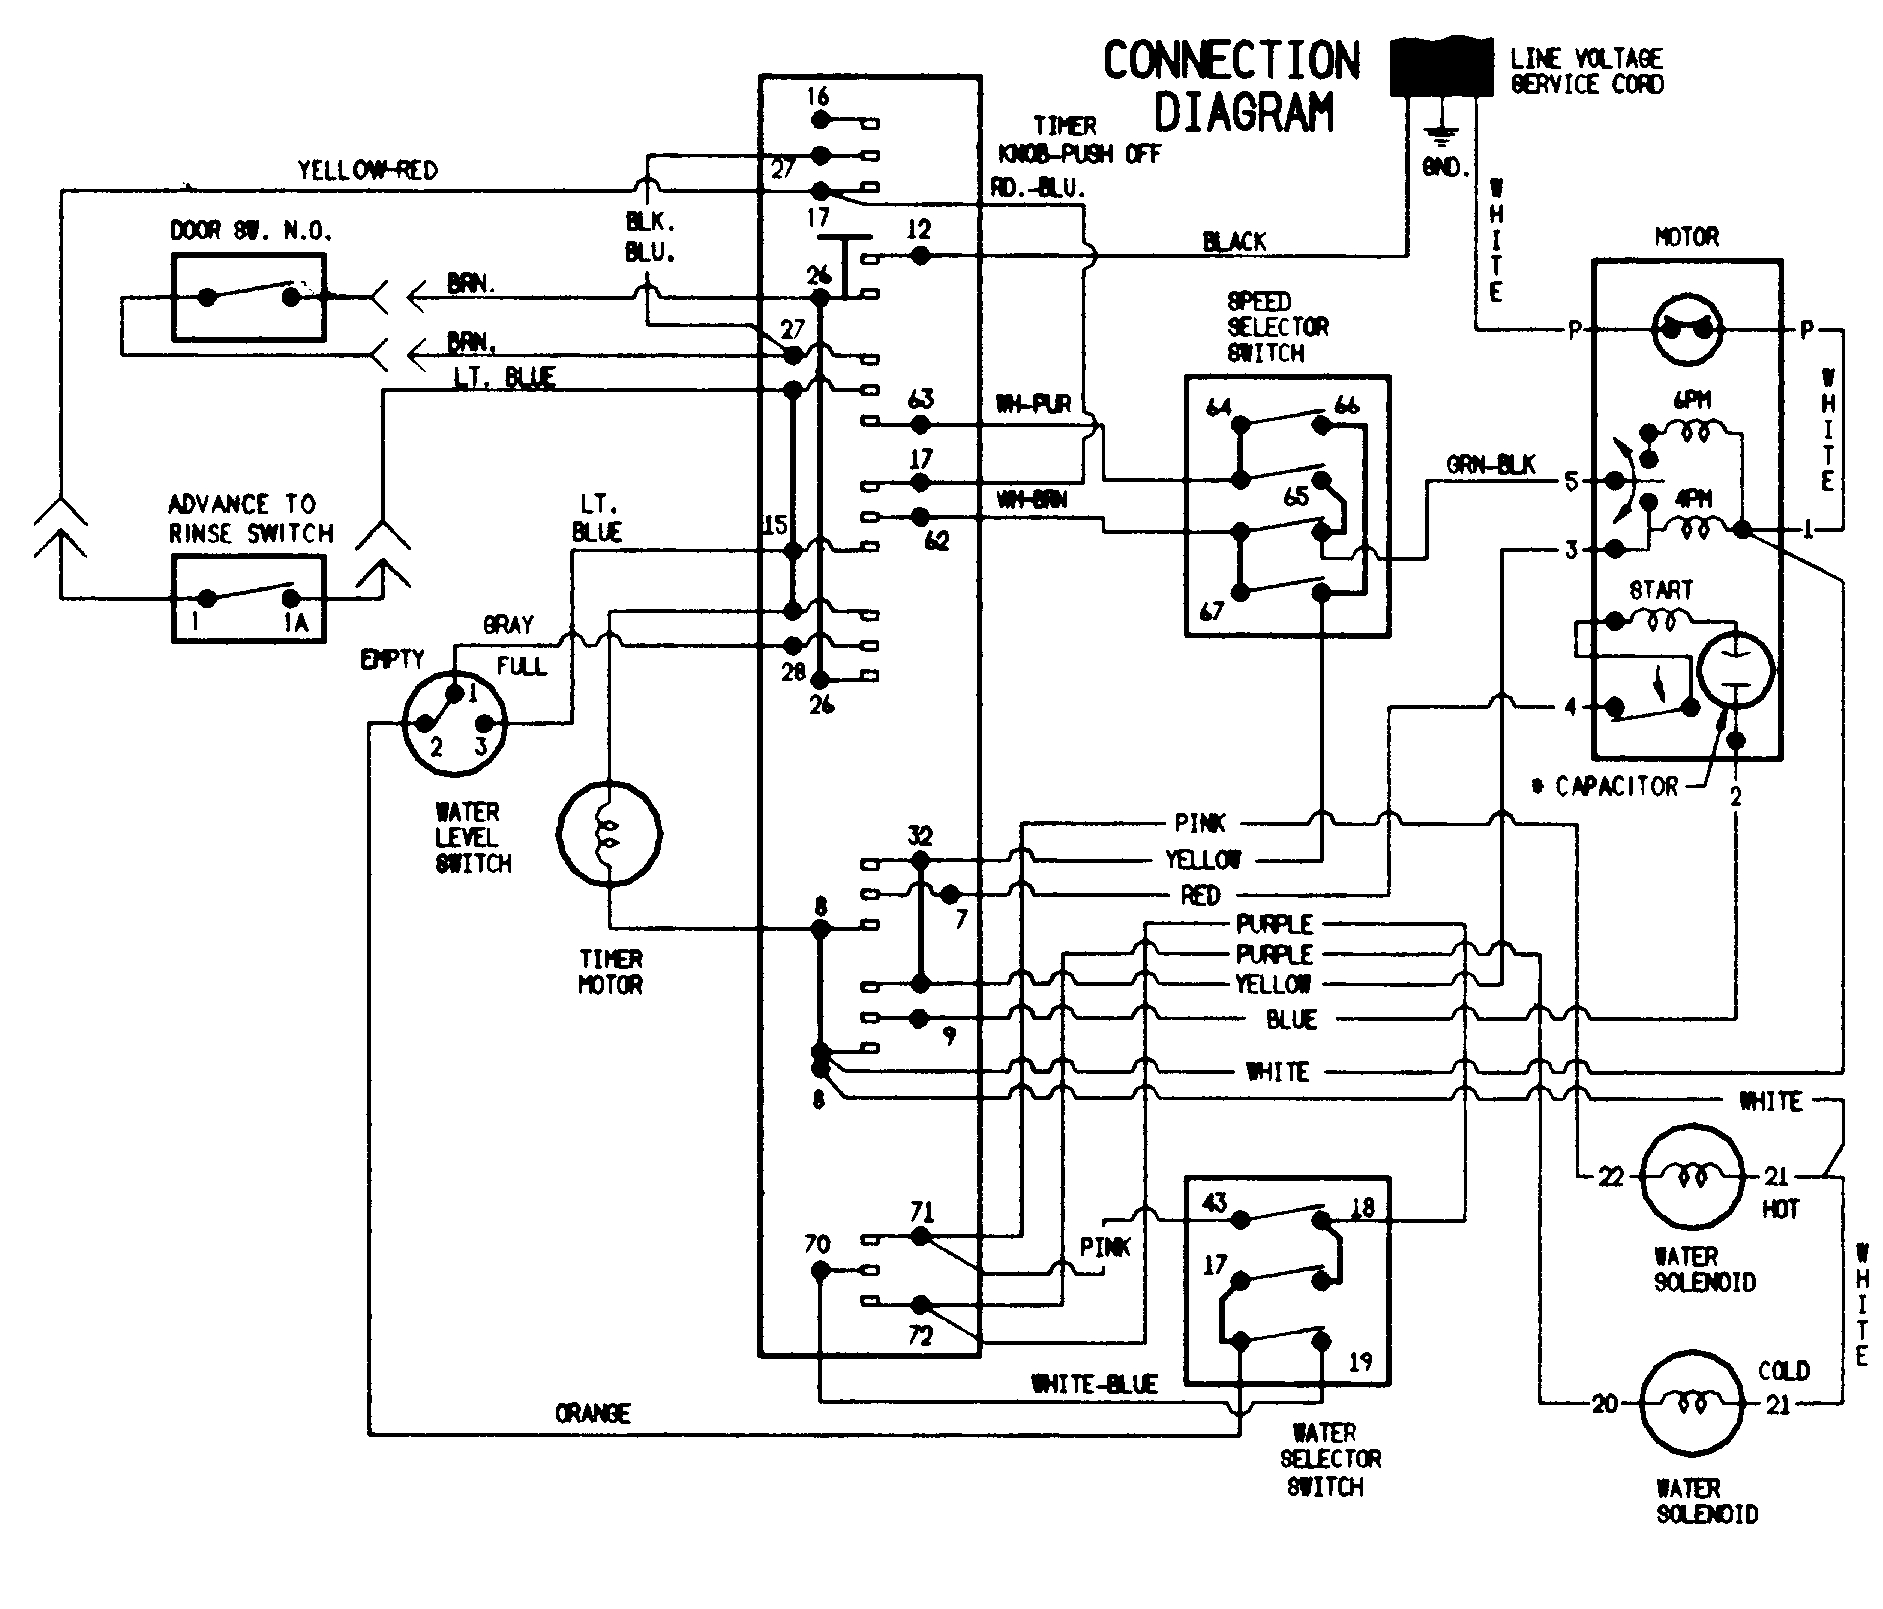 651685008548968954 besides 3 Wire Thermostat Wiring Diagram besides Electrohydraulic steering  jtekt  assembly overview together with Stop Think Chooseself Control as well 70 Hp Force Wiring Diagram. on q see